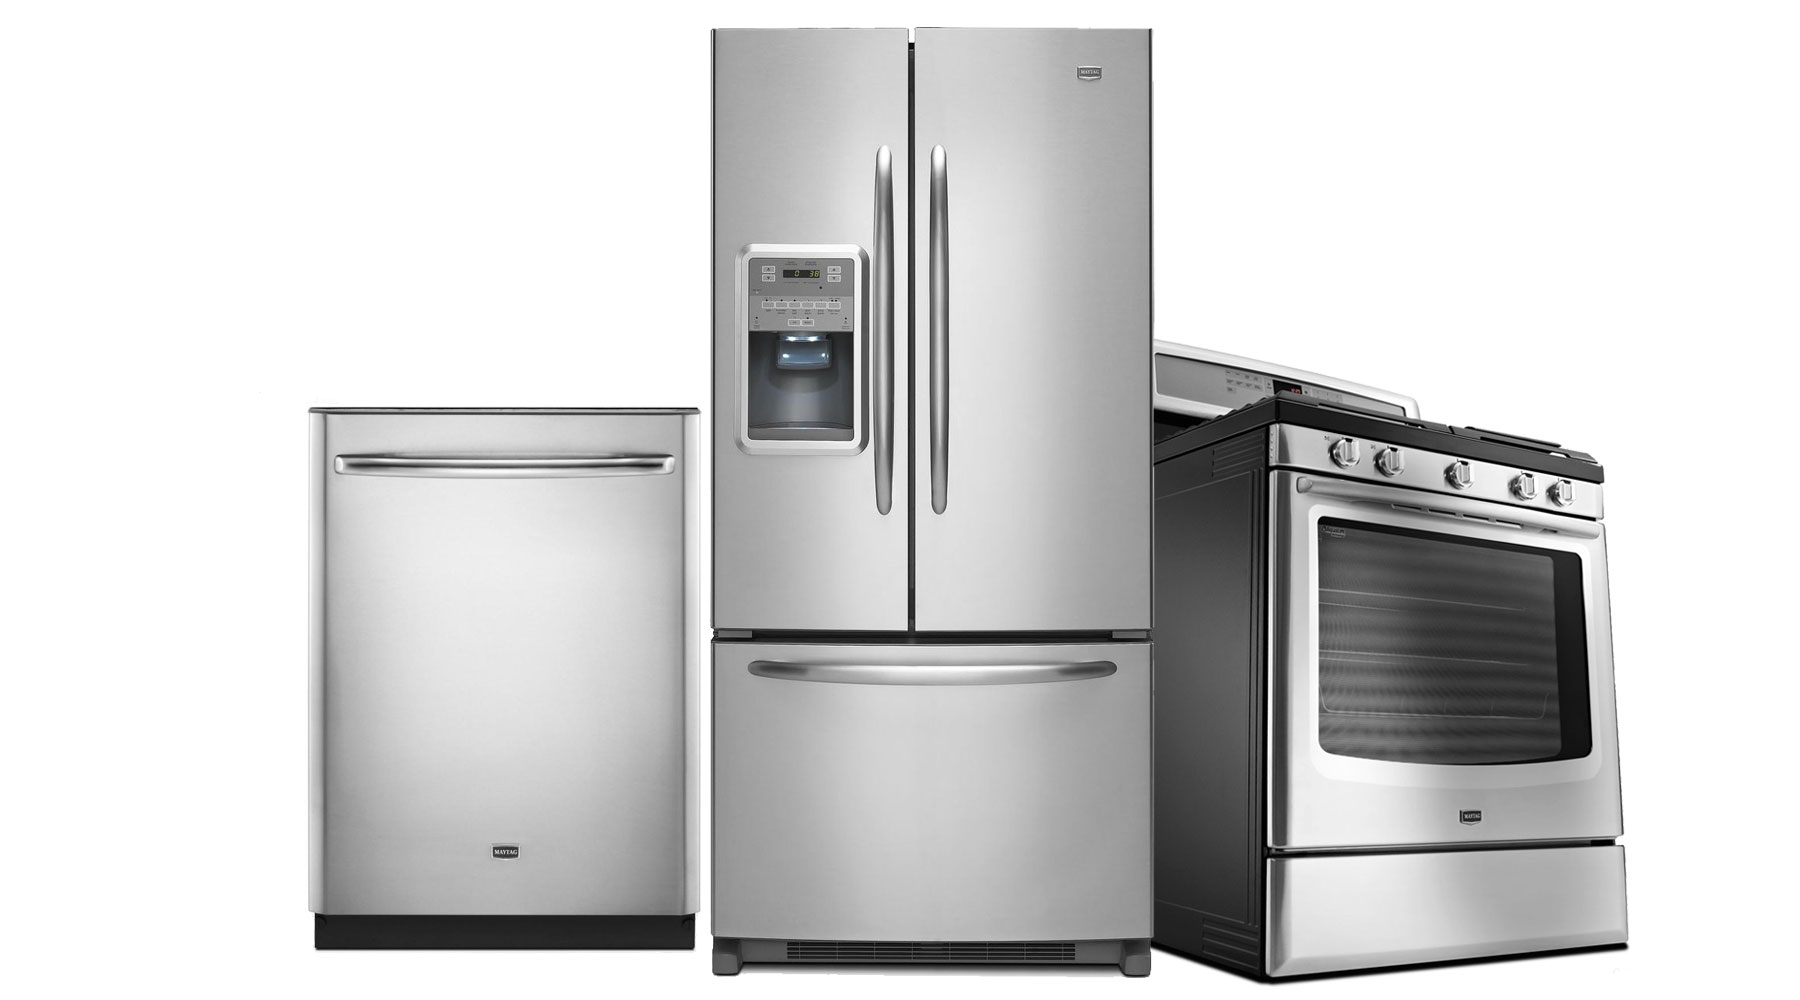 Product Review: Maytag Kitchen Appliances - Row House Reno